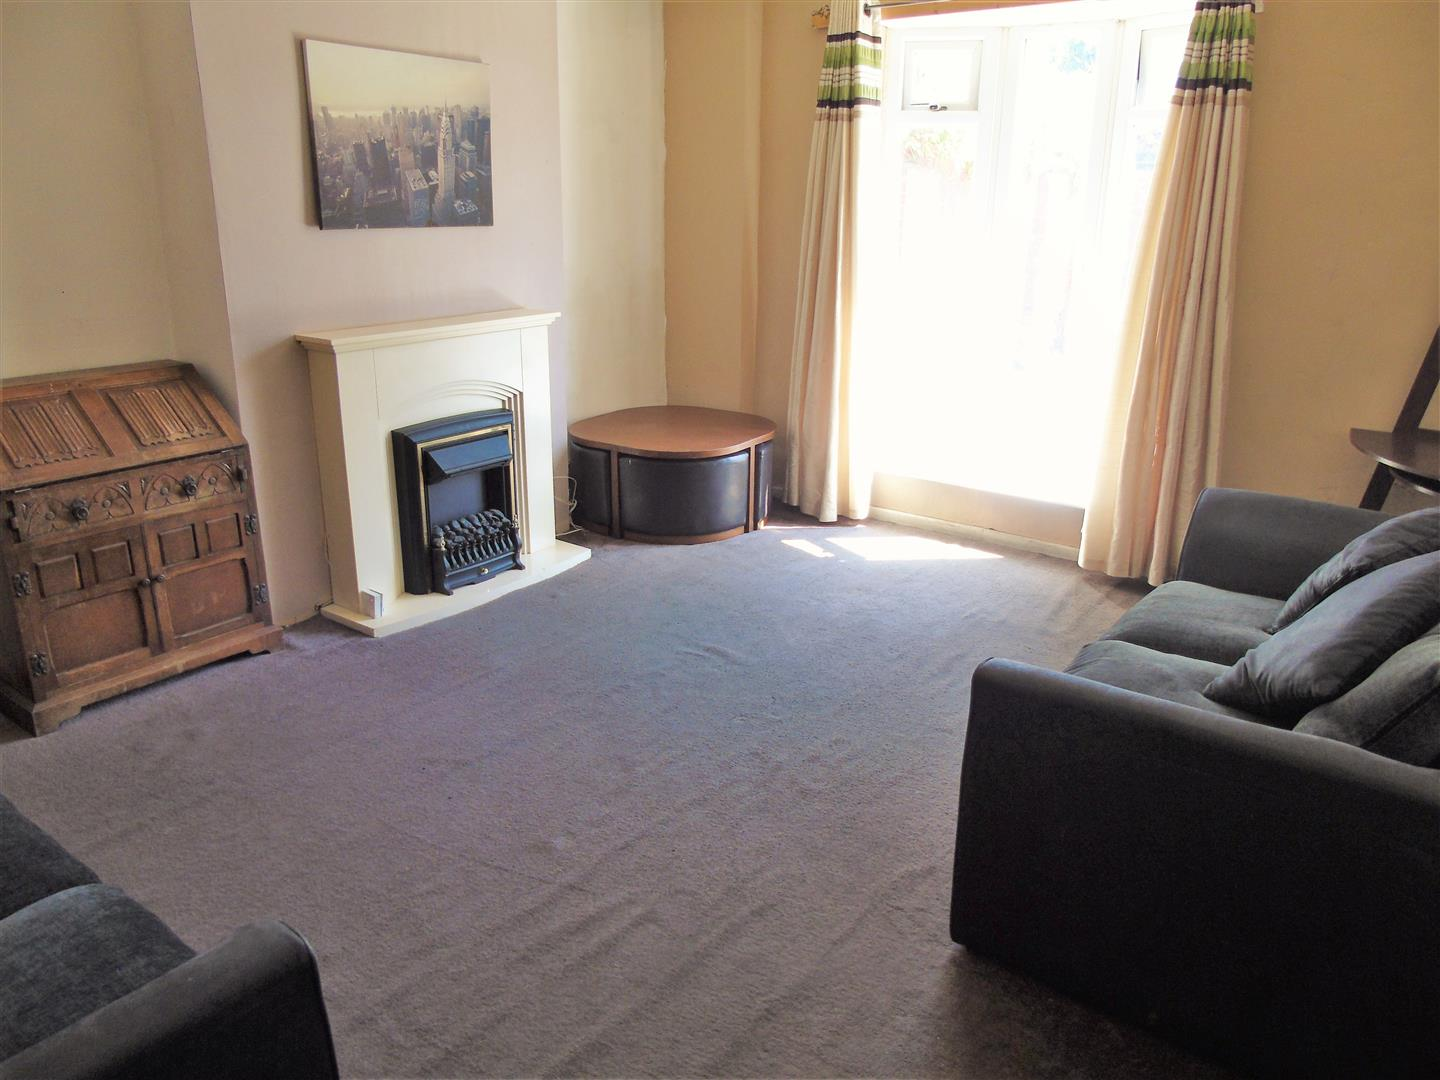 4 Bedrooms, House - End Terrace, Cunard Road, Liverpool